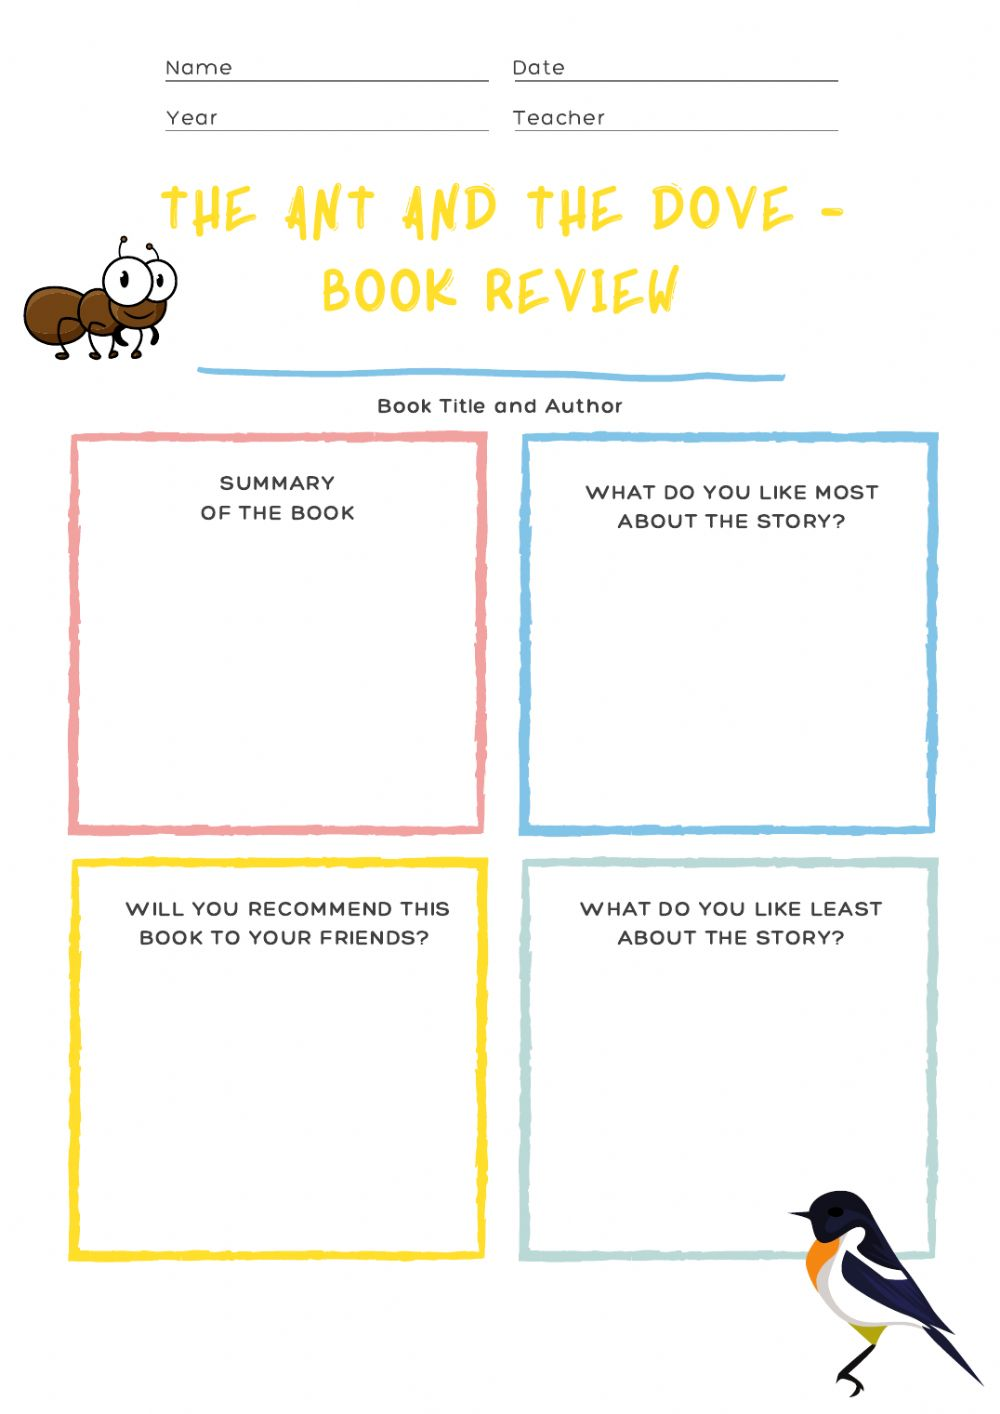 hight resolution of 02.12 - Book report! The ant and the dove worksheet